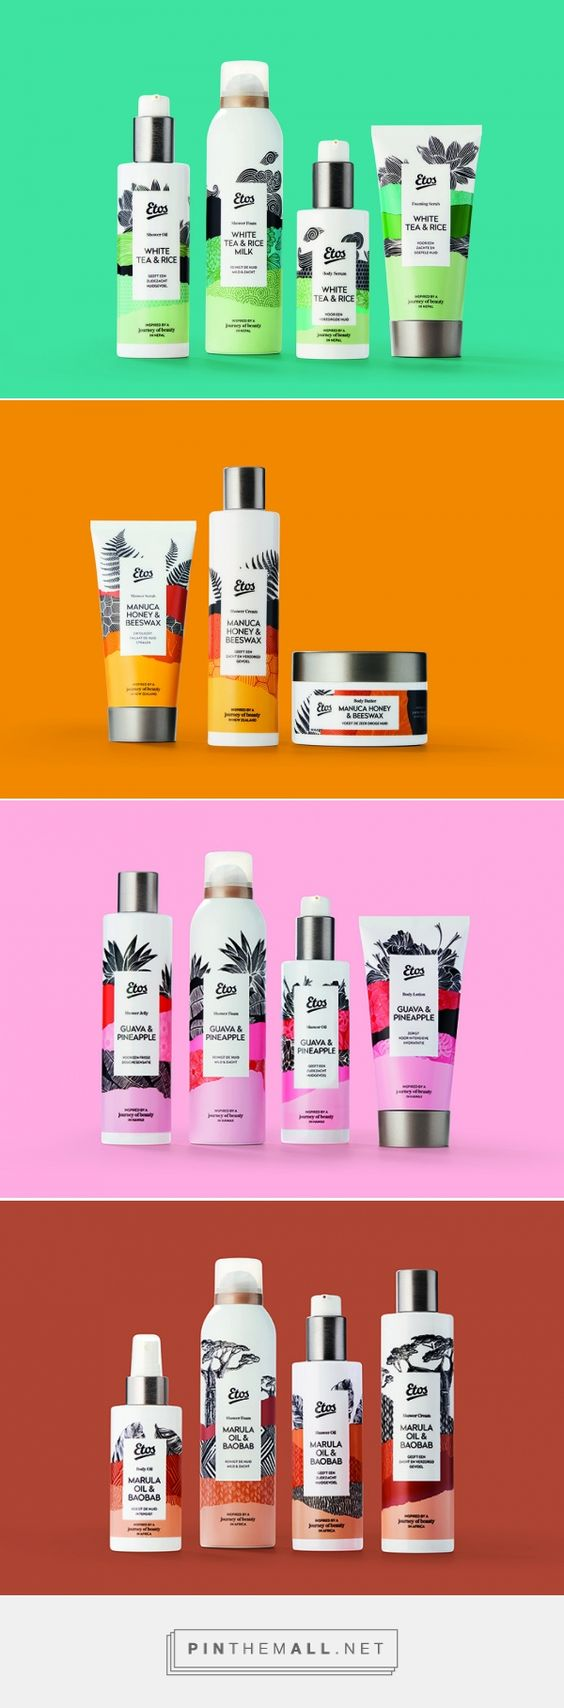 Etos Personal Care Incorporates Graphics in a Visually Appealing Way — The Dieline | Packaging & Branding Design & Innovation News - created via https://pinthemall.net